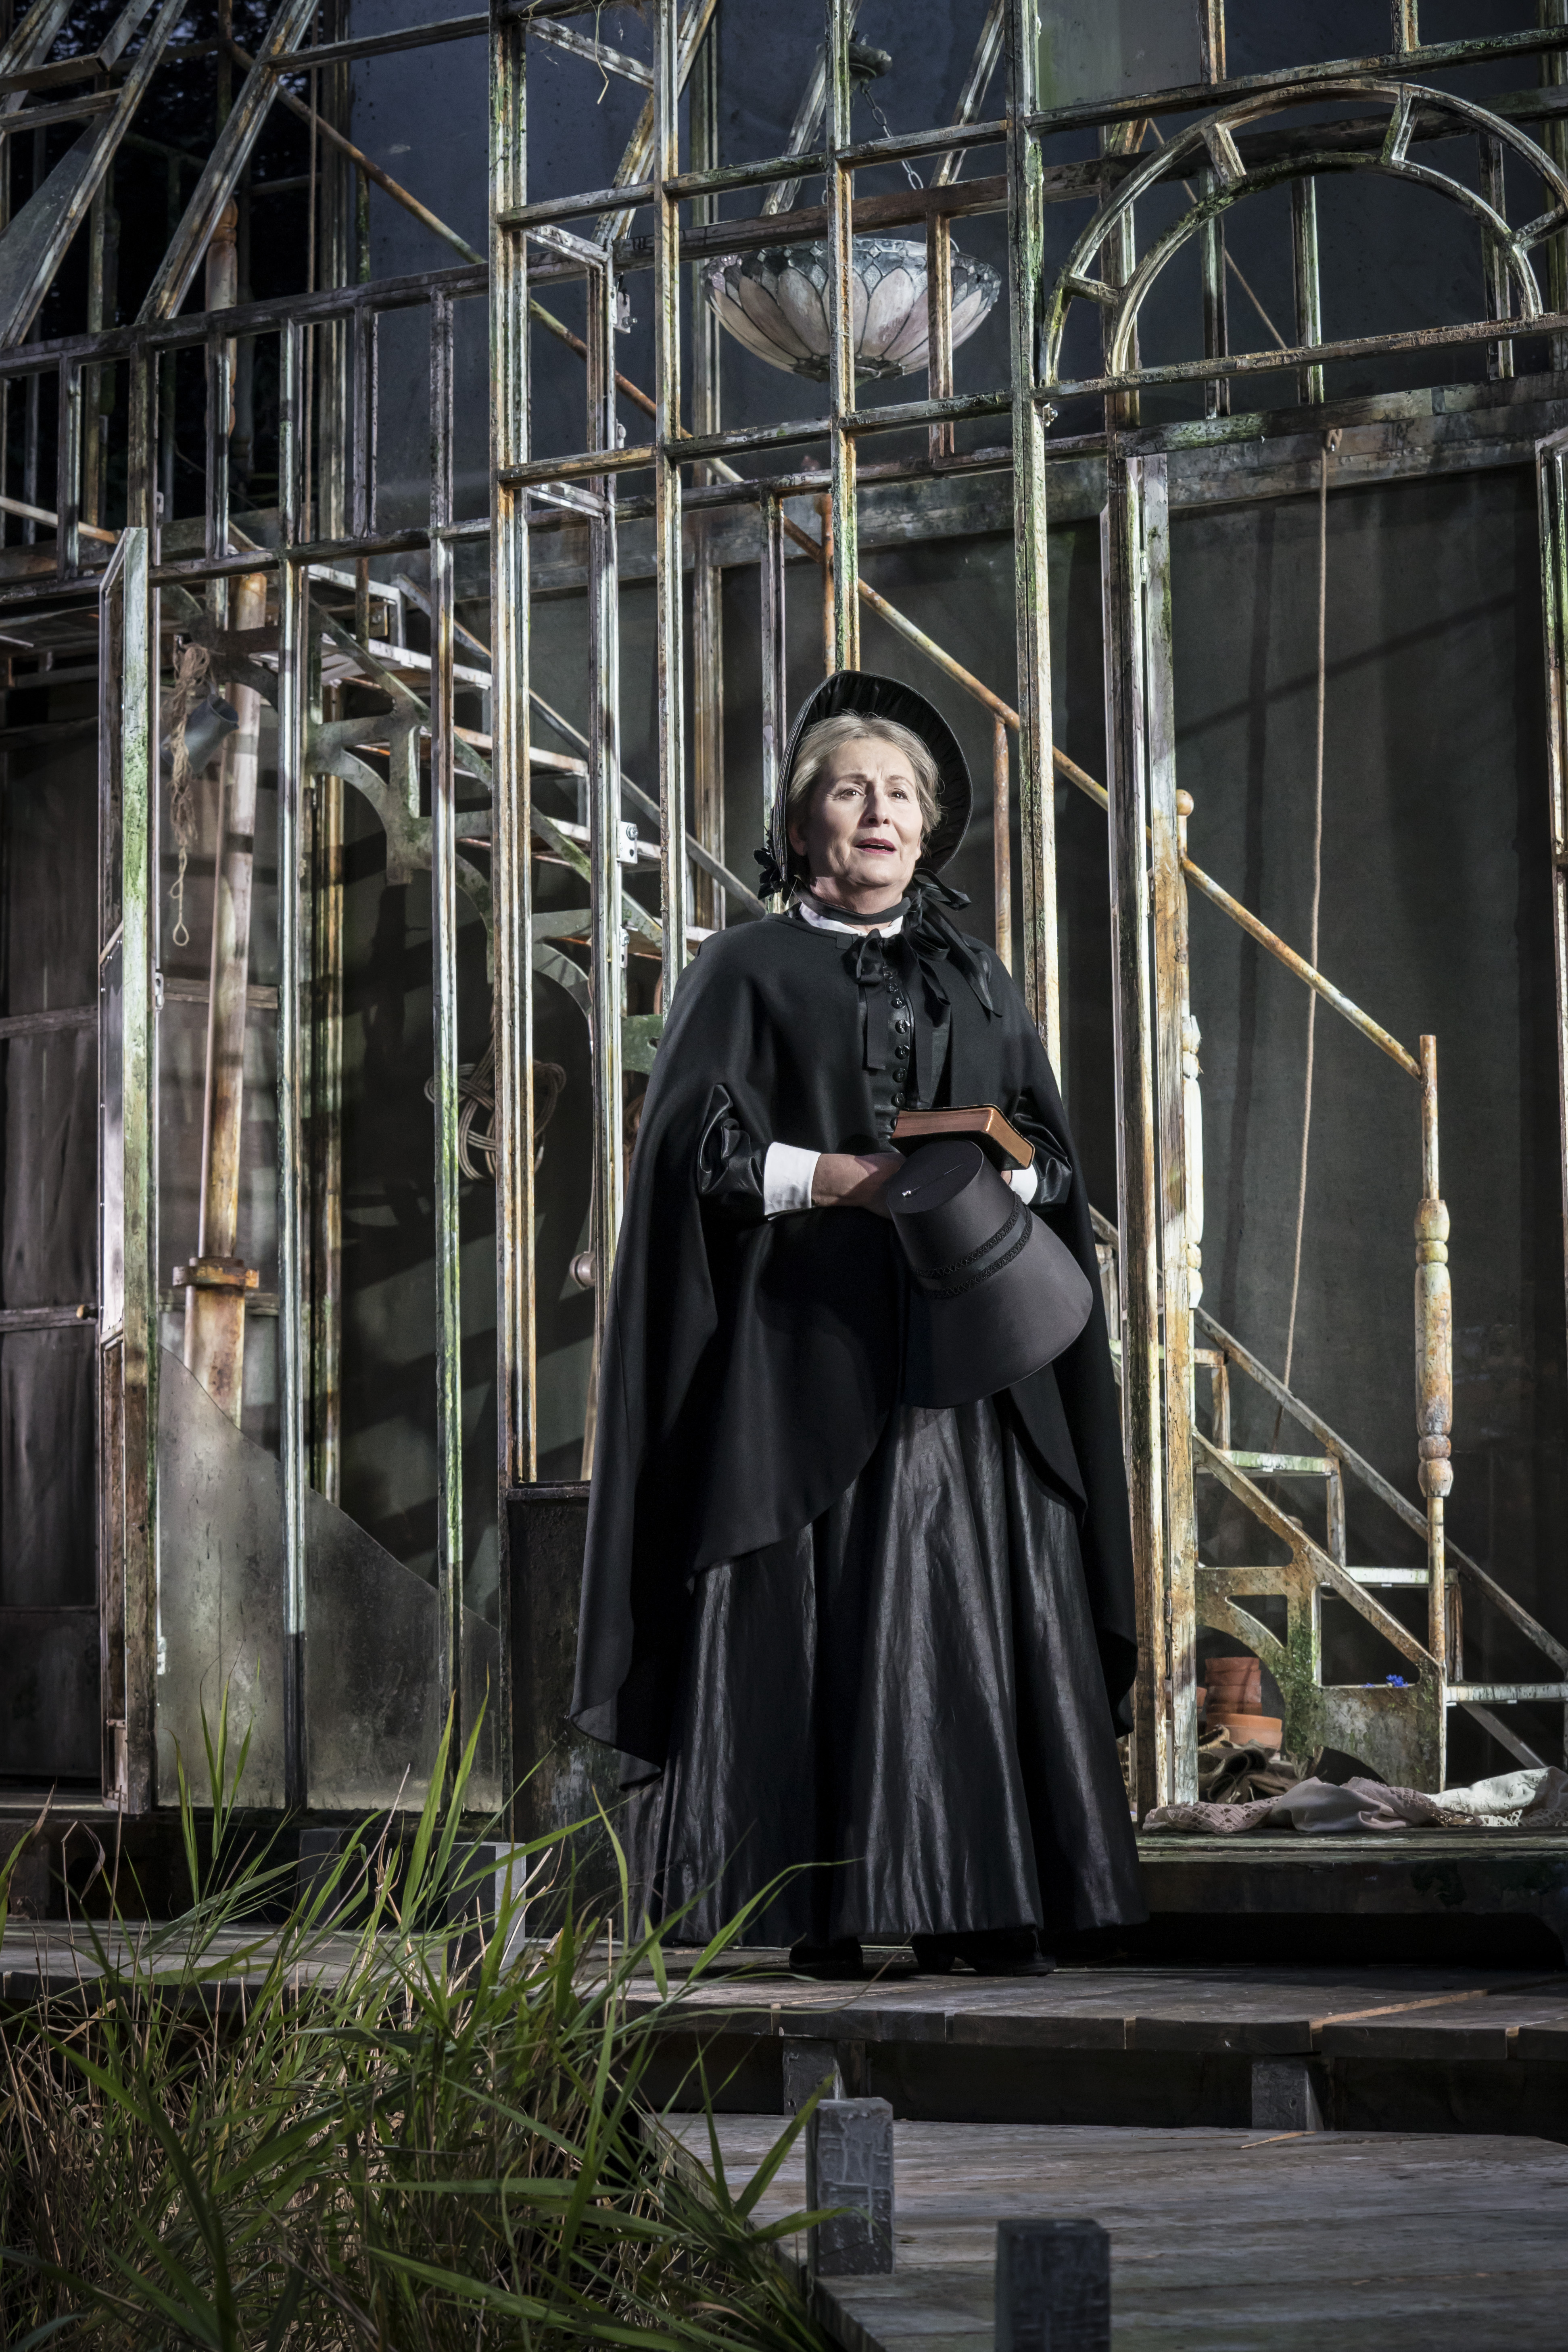 The Turn of the Screw (2018) | Our Heritage | Open Air Theatre